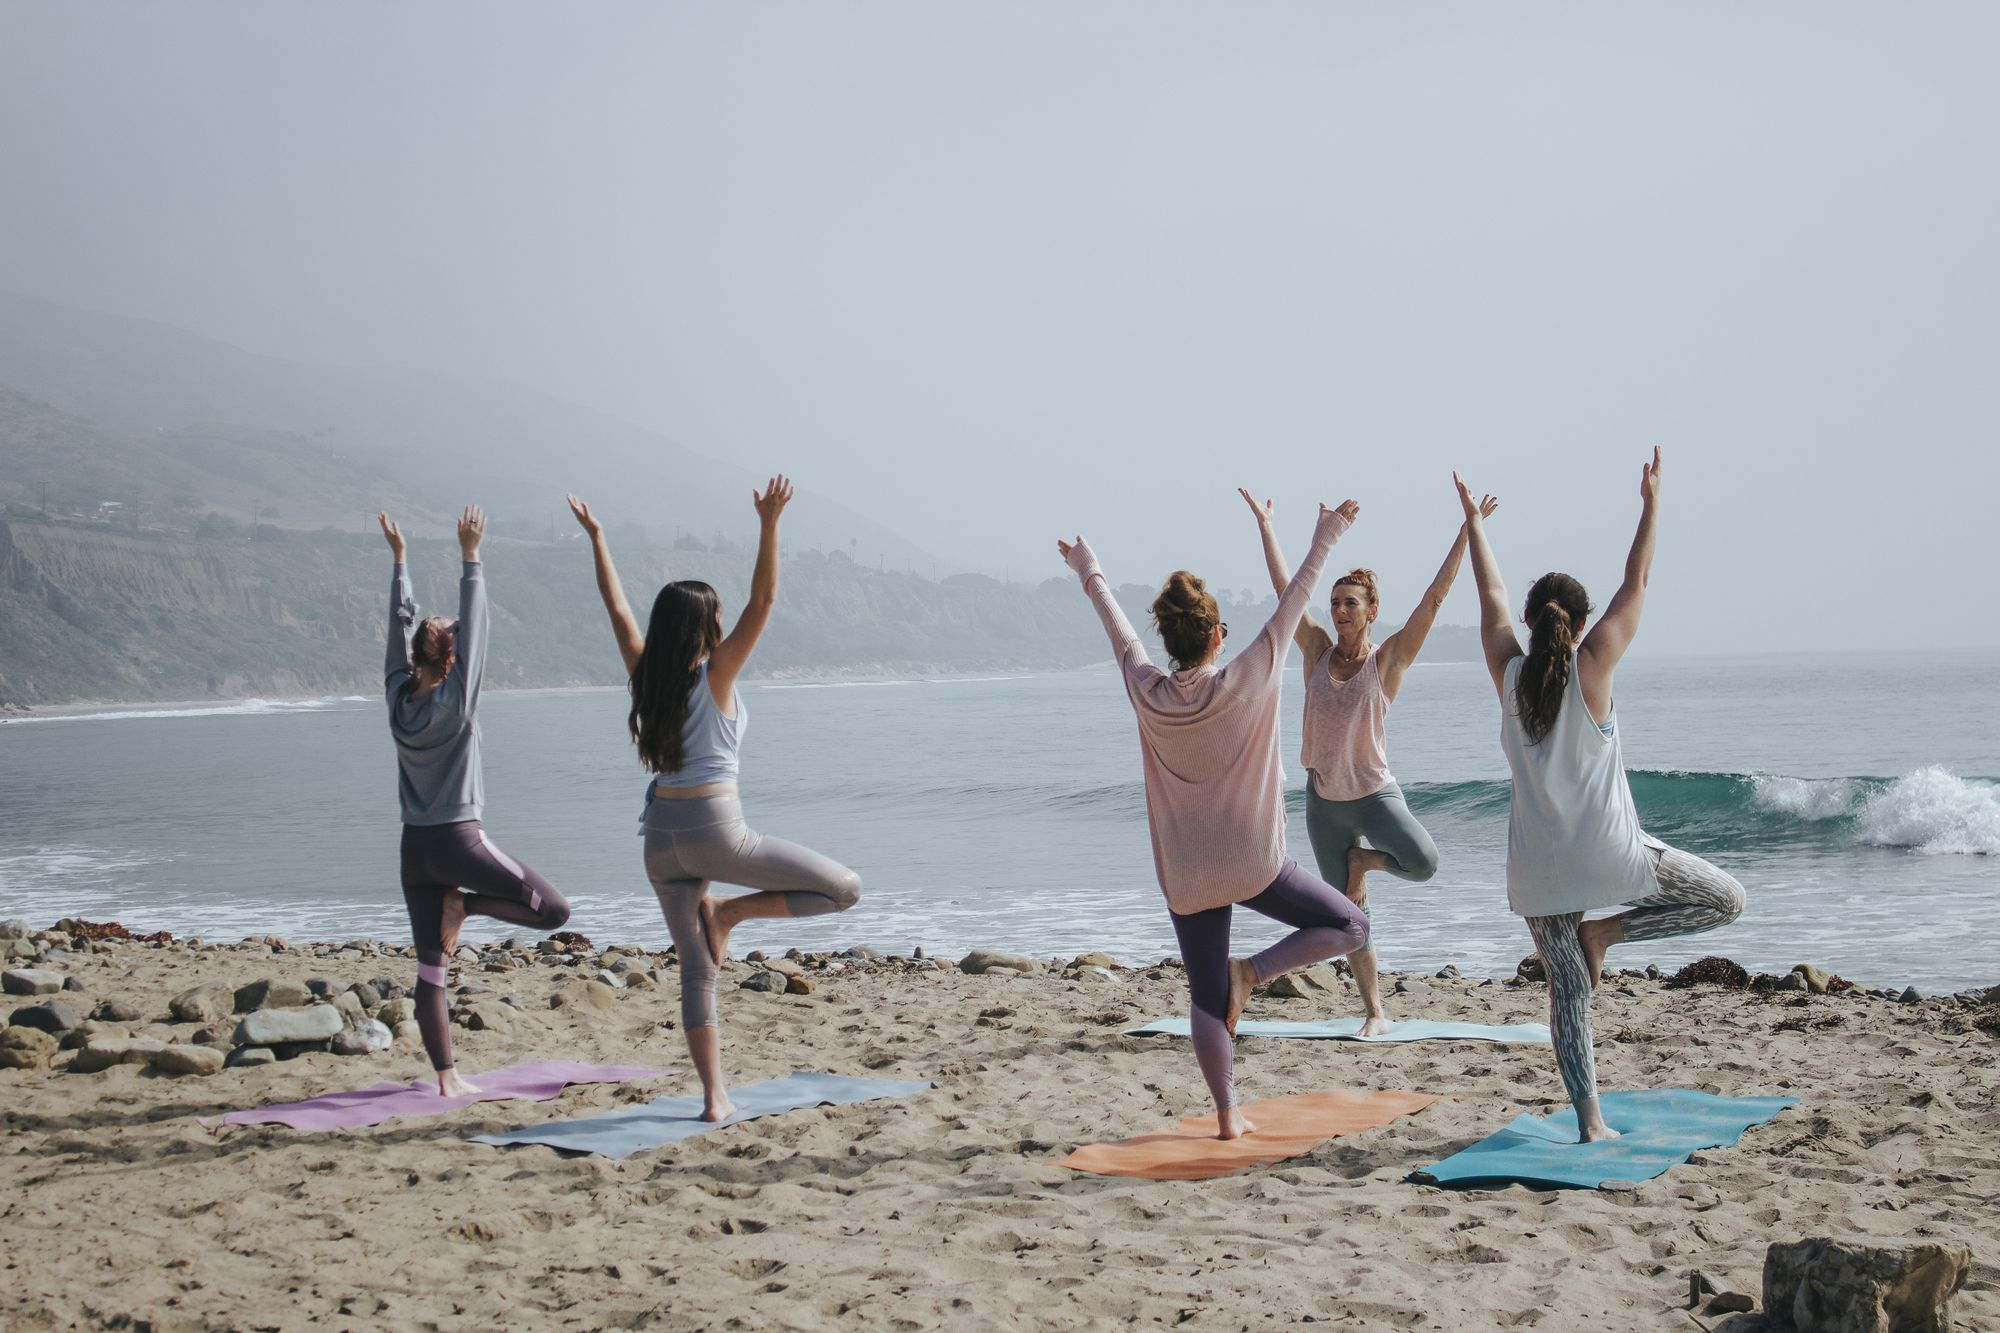 Practicing how to teach yoga with a small group of yoga students at the beach